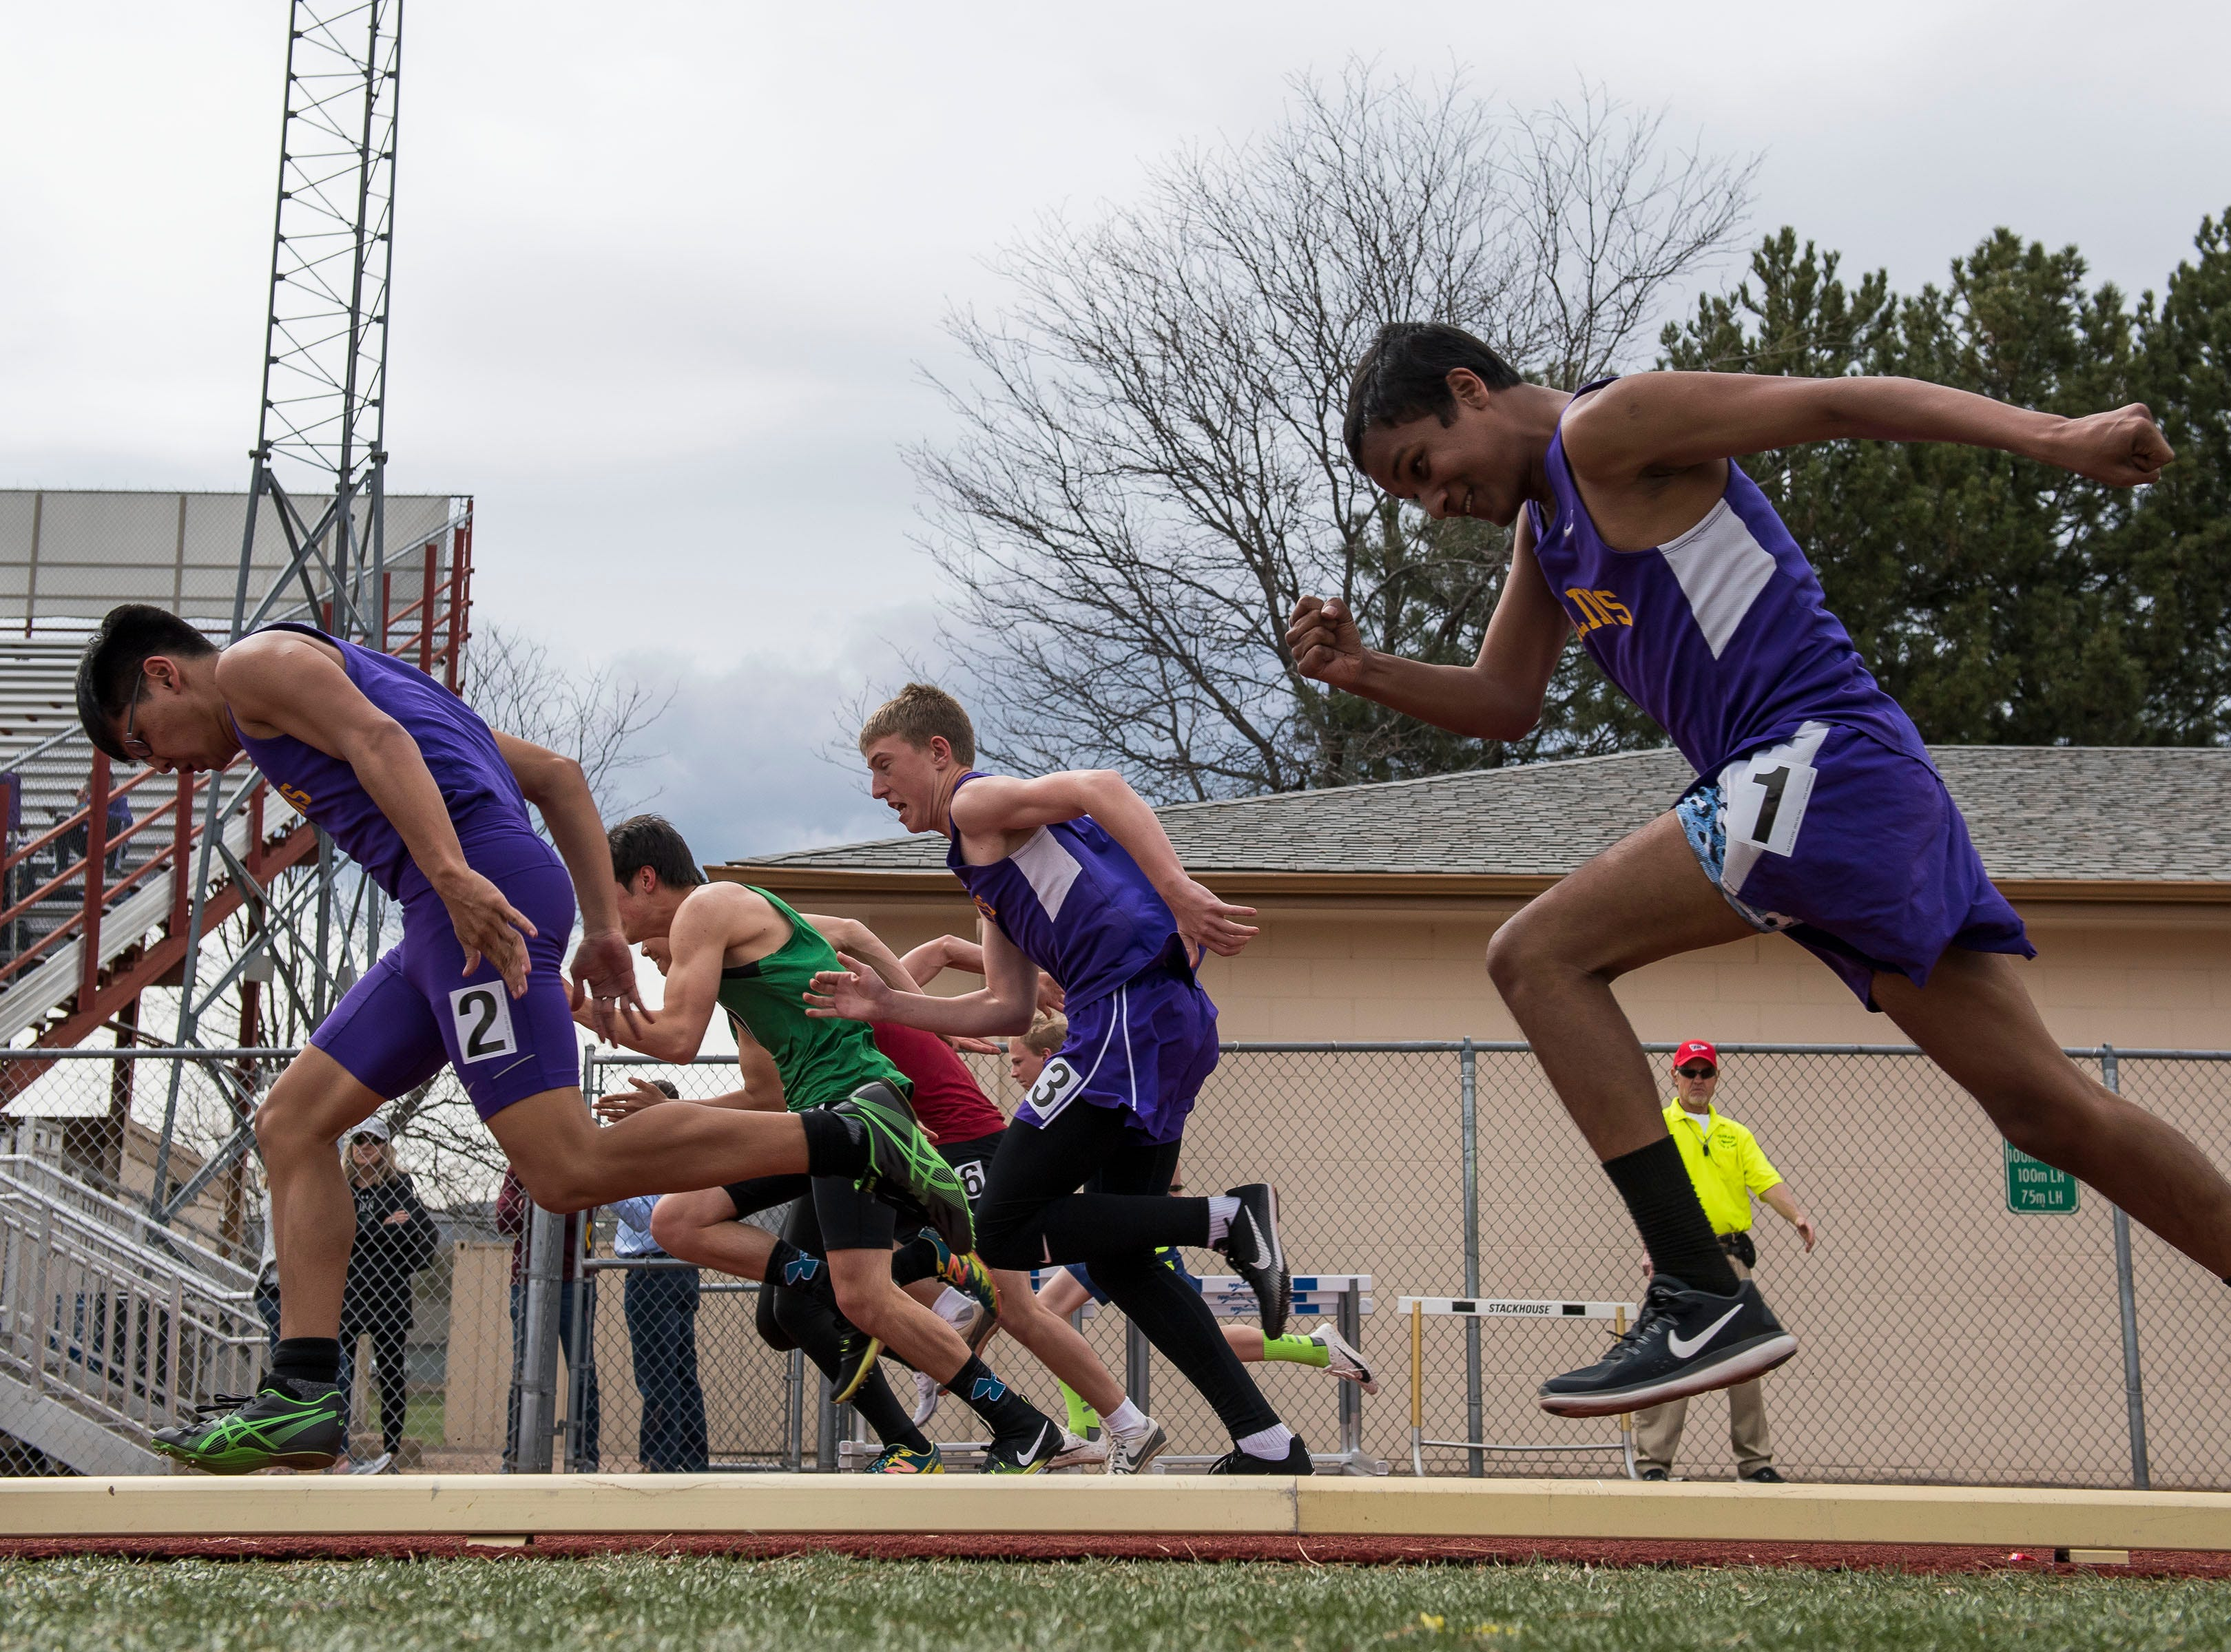 Local boys compete in the boys 100-meter dash during the Randy Yaussi City Track Championships on Tuesday, April 9, 2019, at French Field in Fort Collins, Colo.